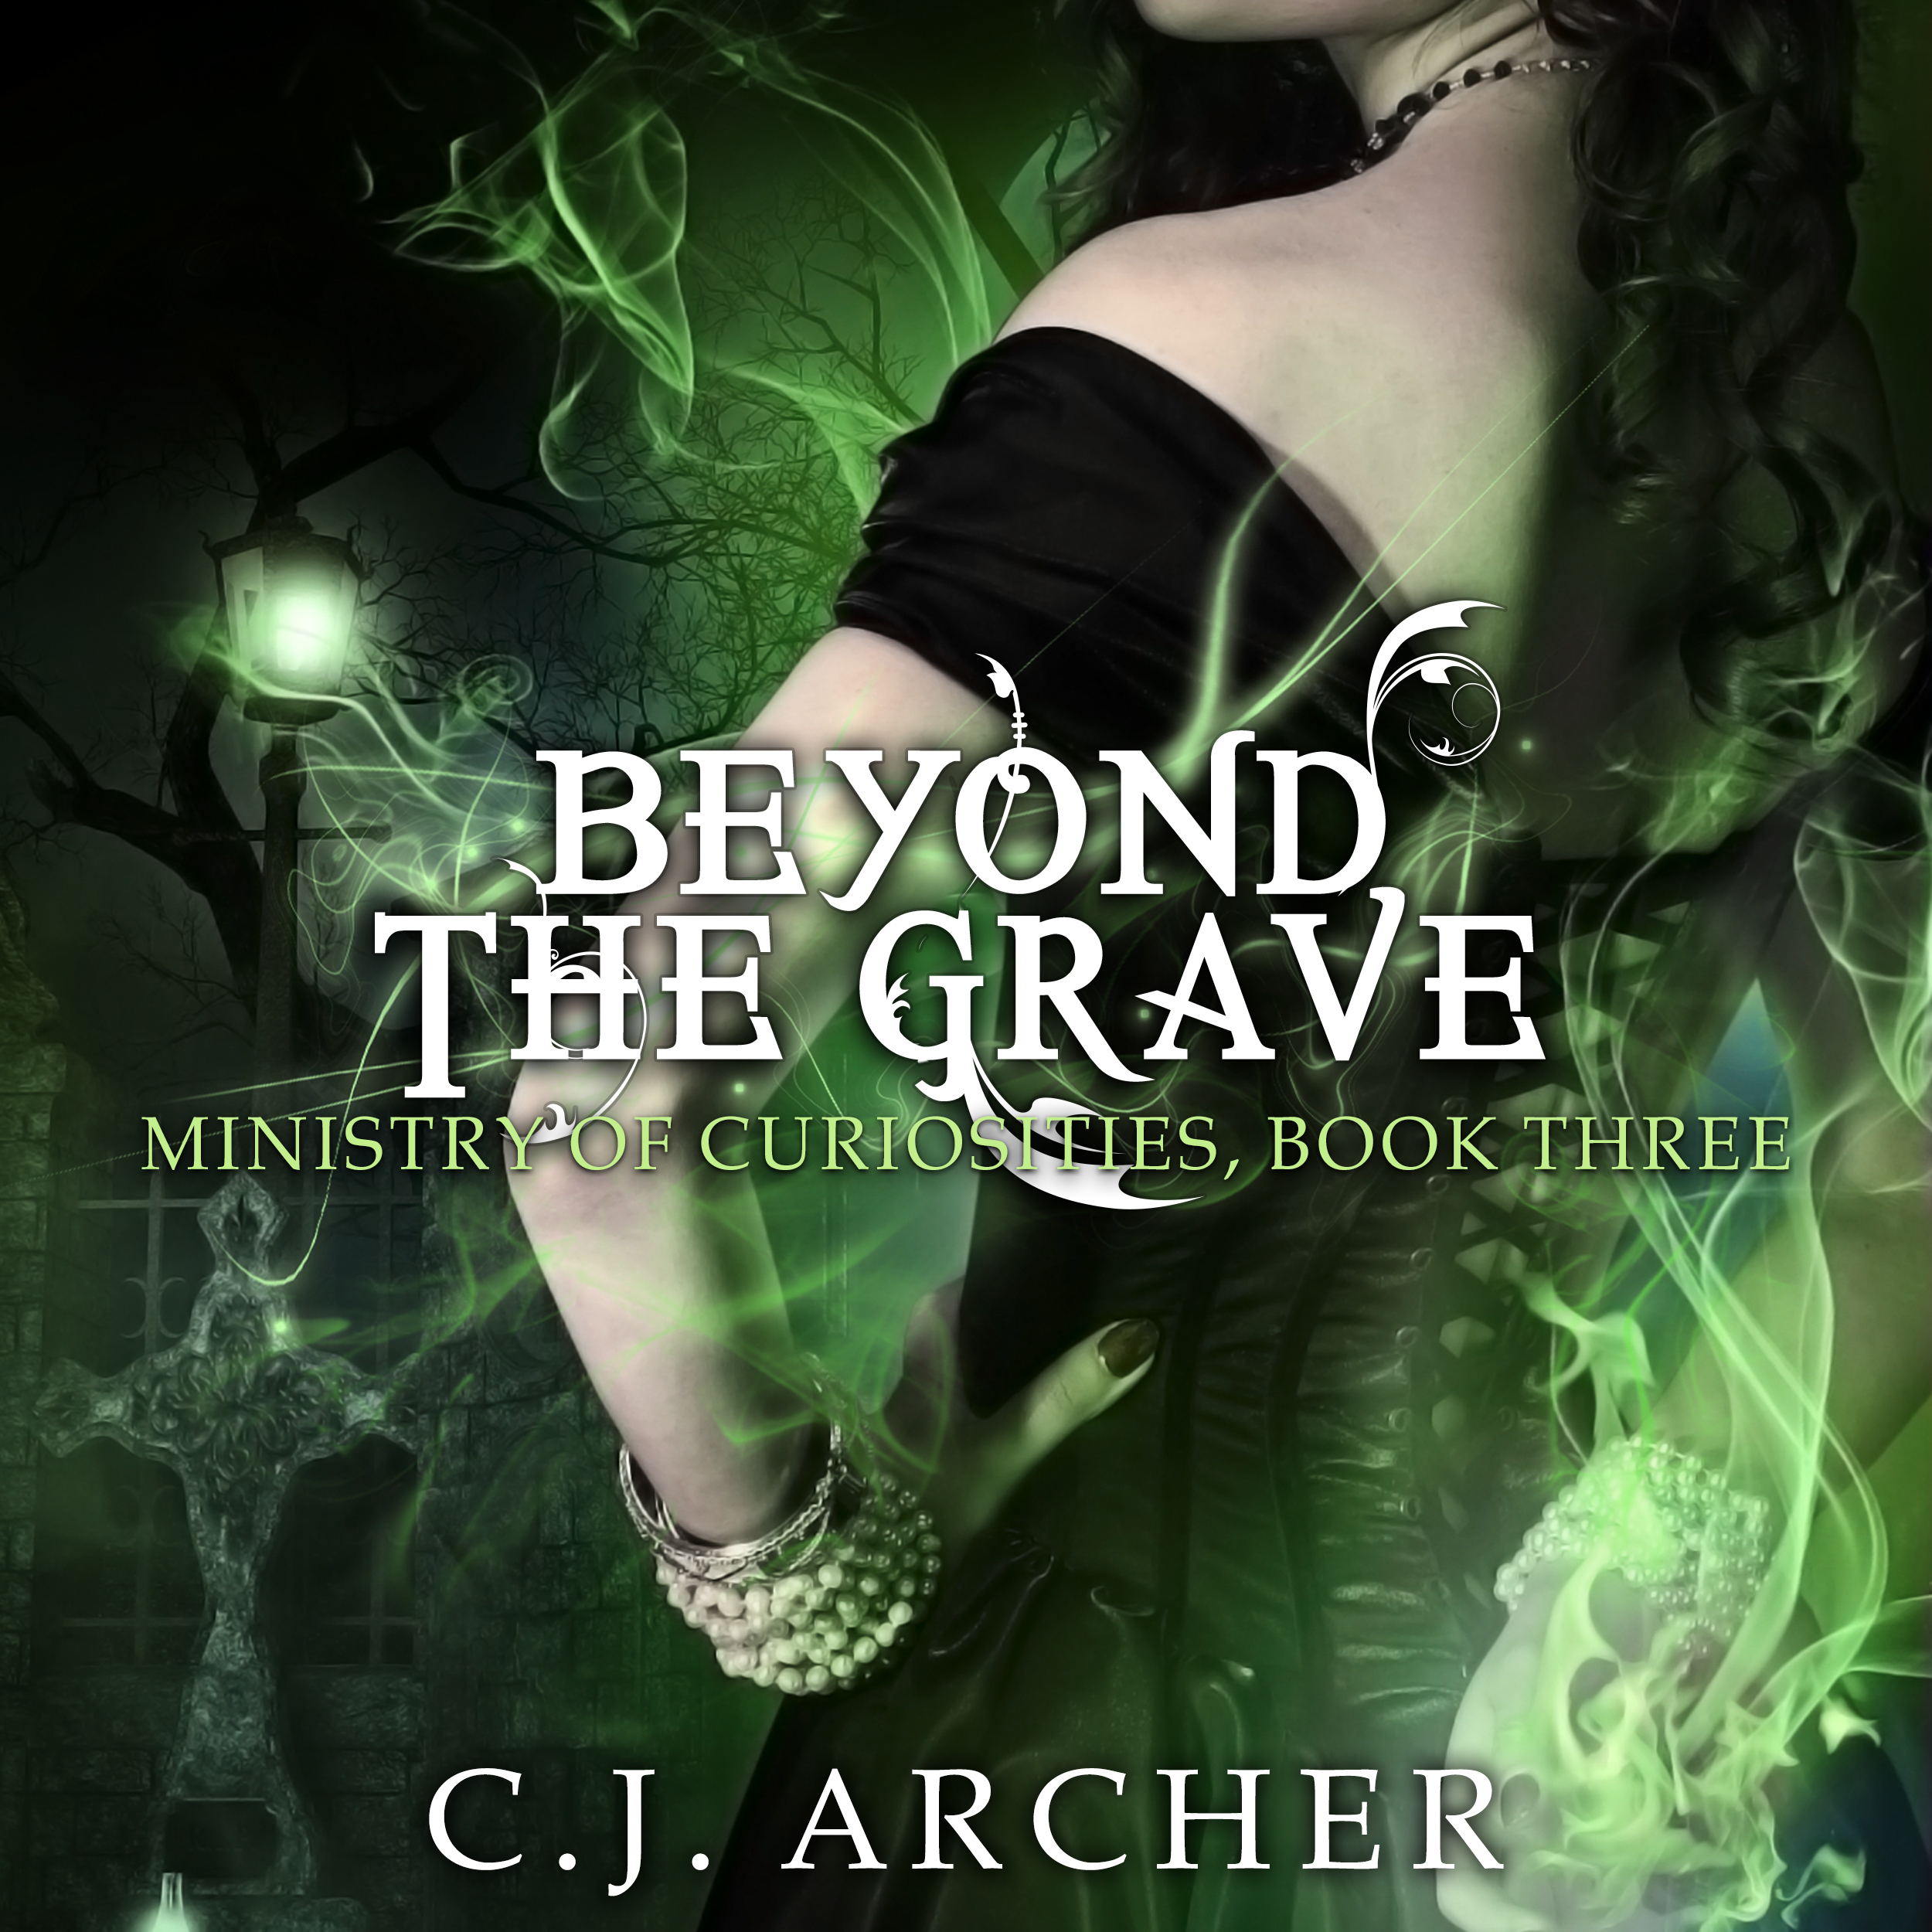 Beyond The Grave audiobook by CJ Archer